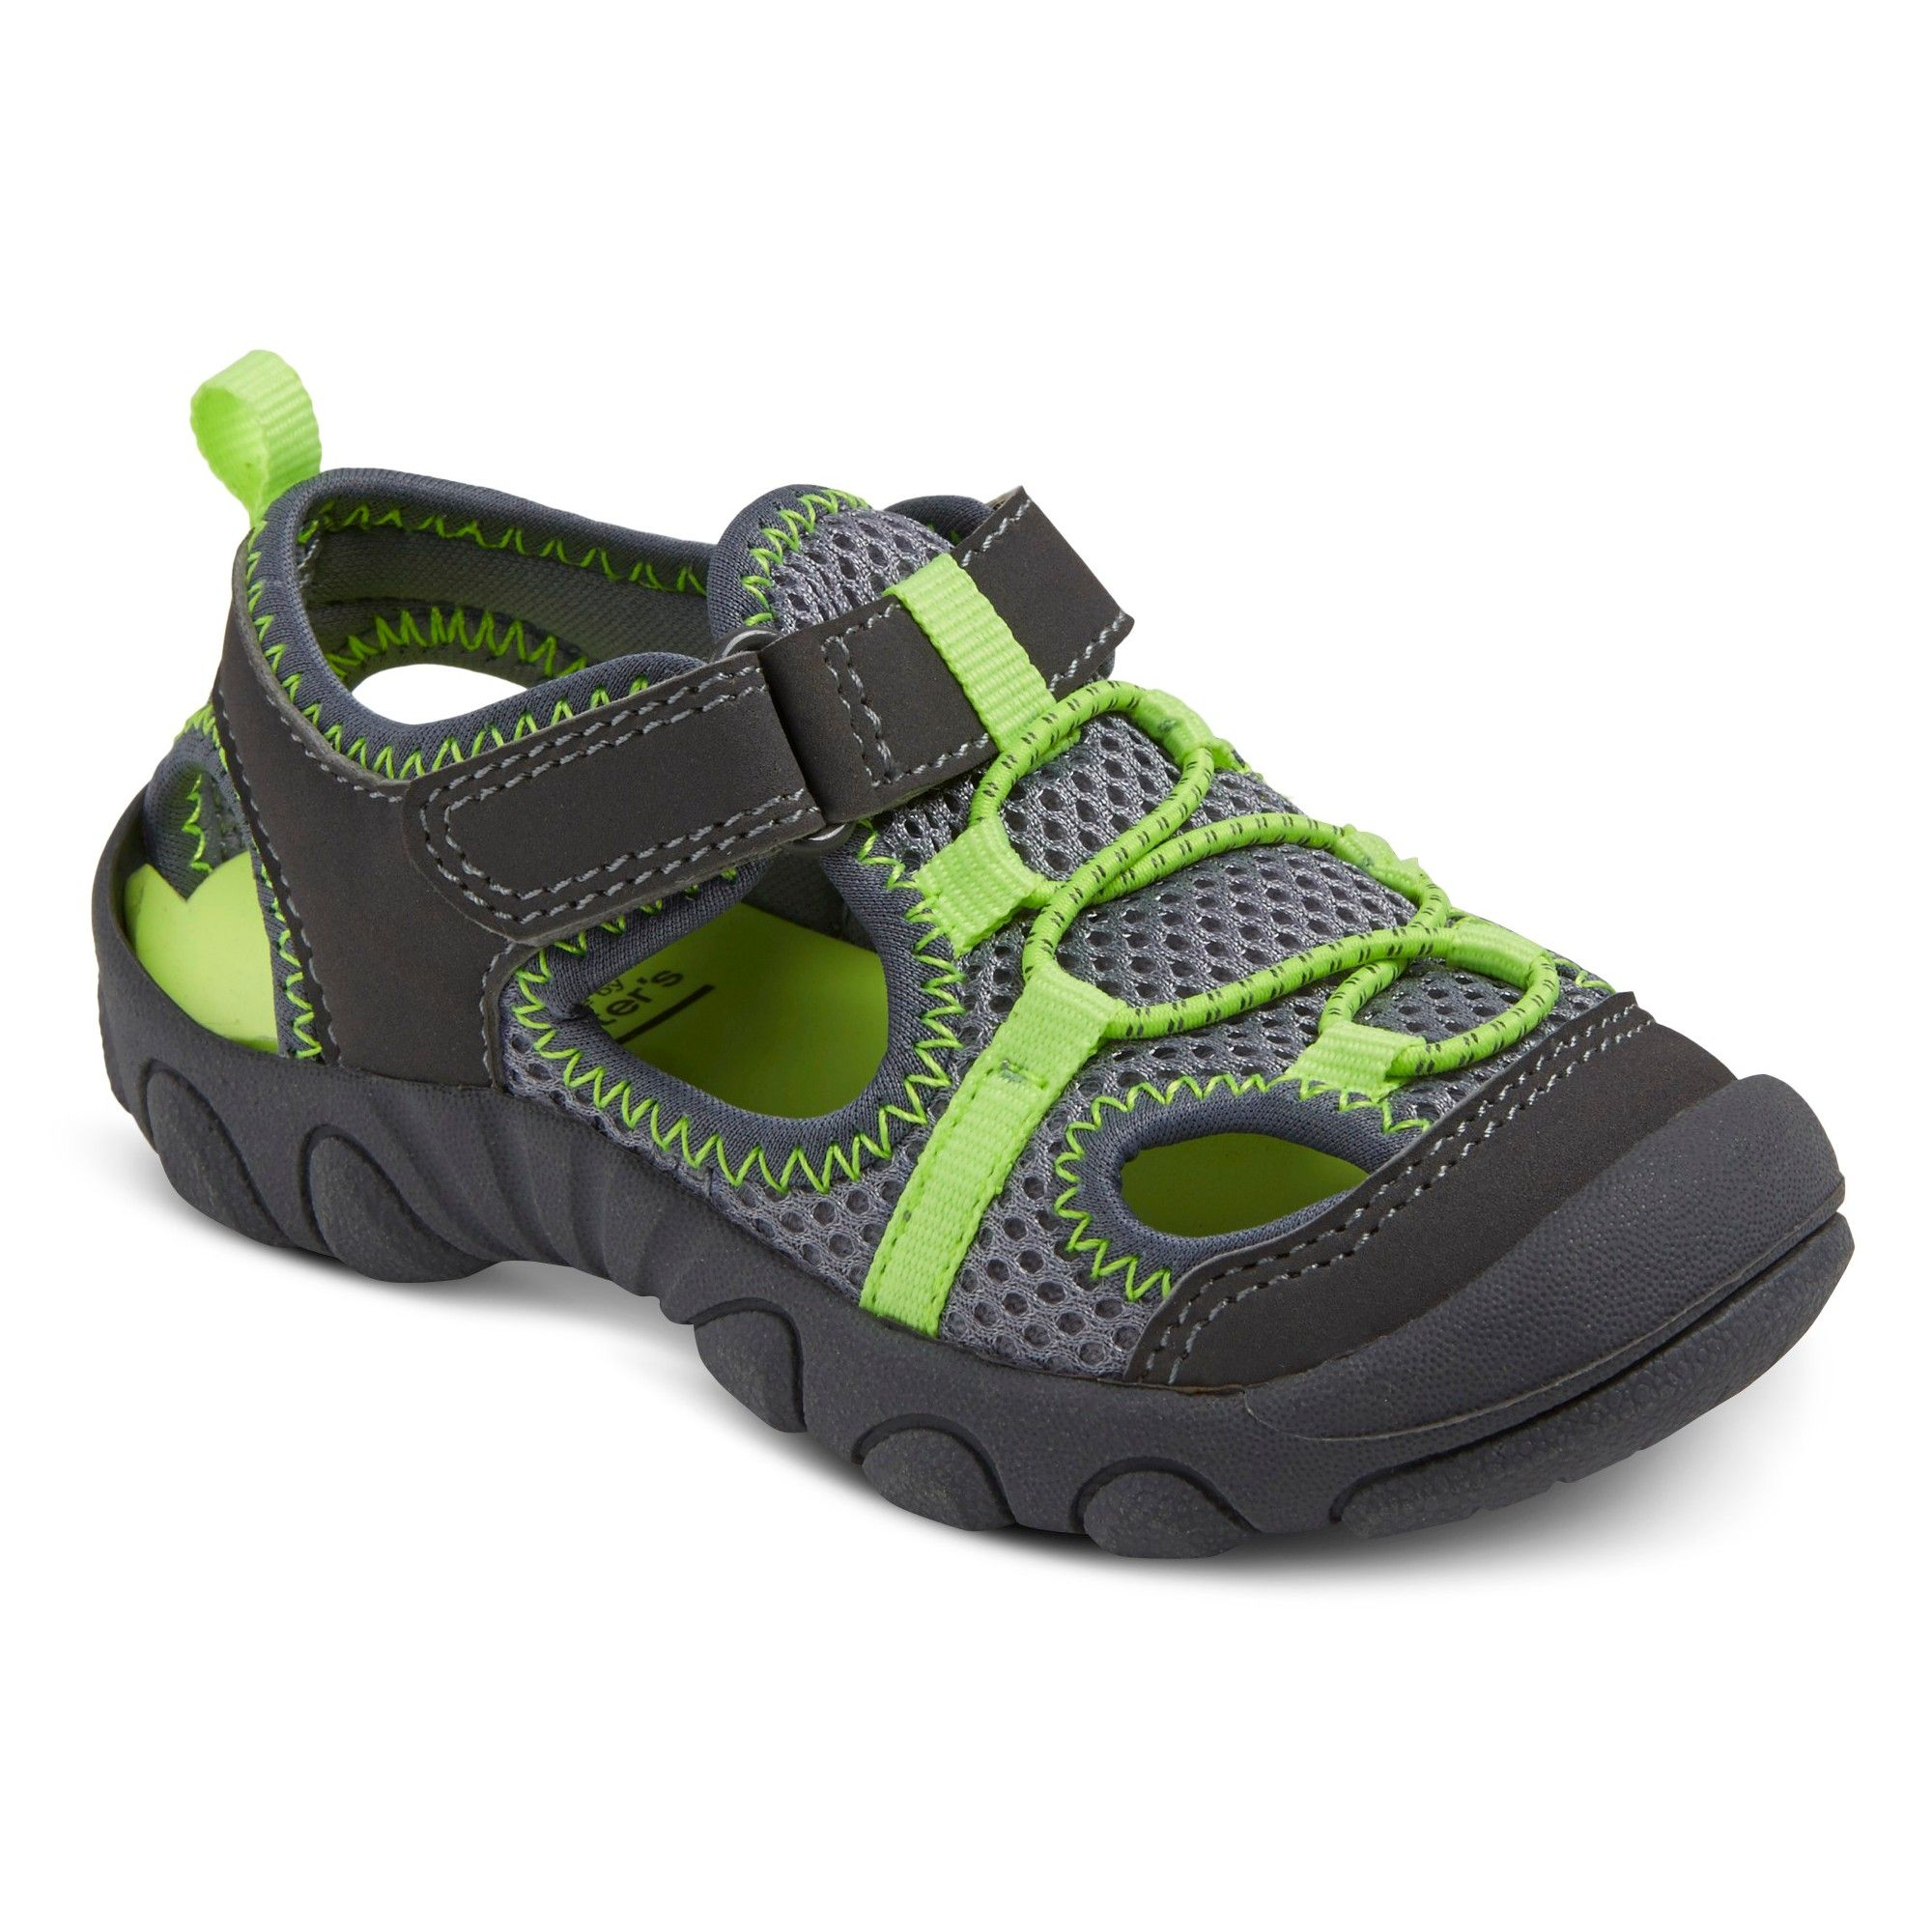 Toddler Boys Caden Footbed Sandals Just e You Made by Carter s